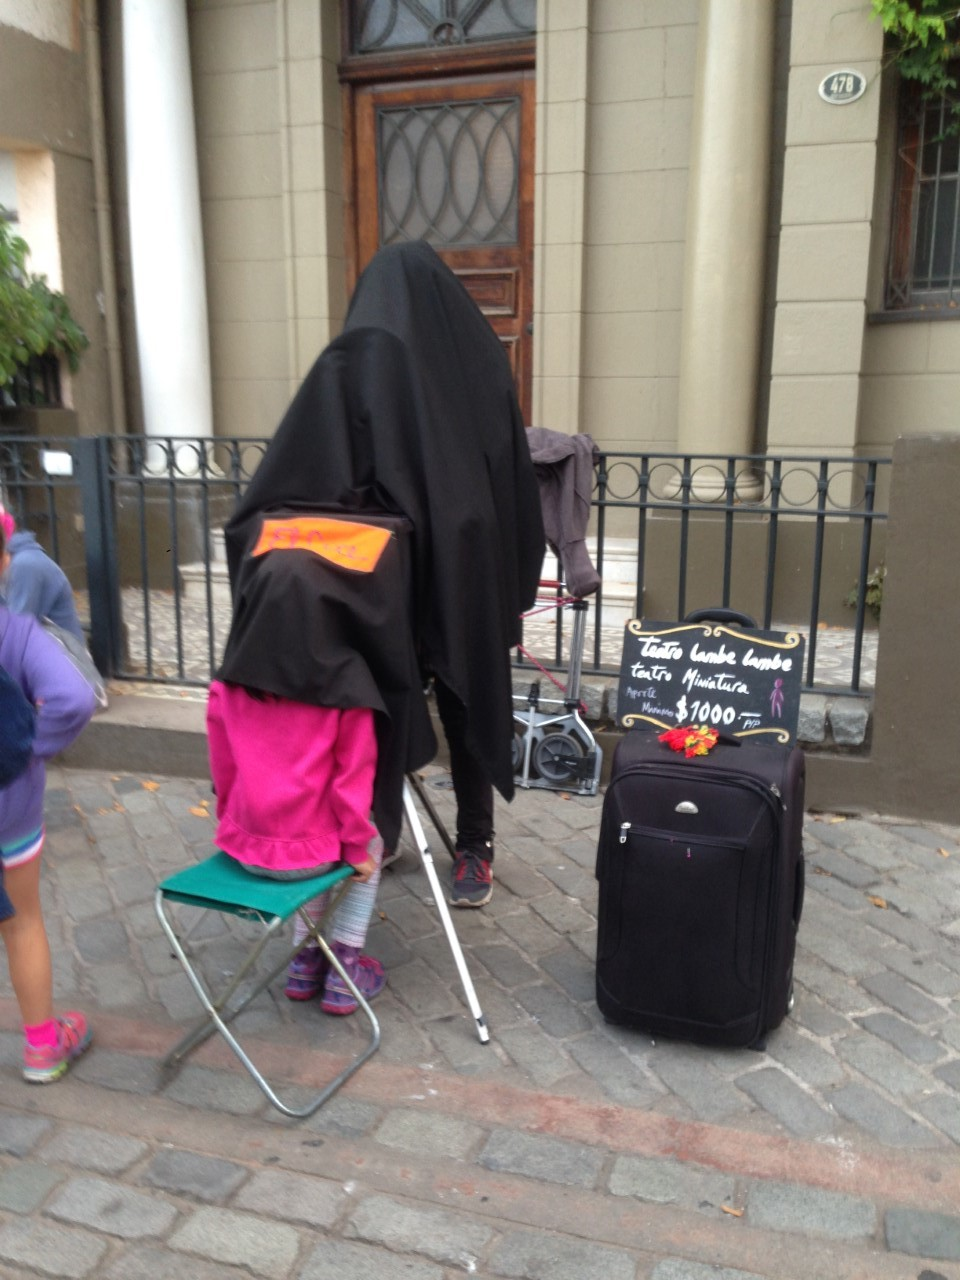 A child watches a puppet show - seriously! - under this sheet on a sidewalk.